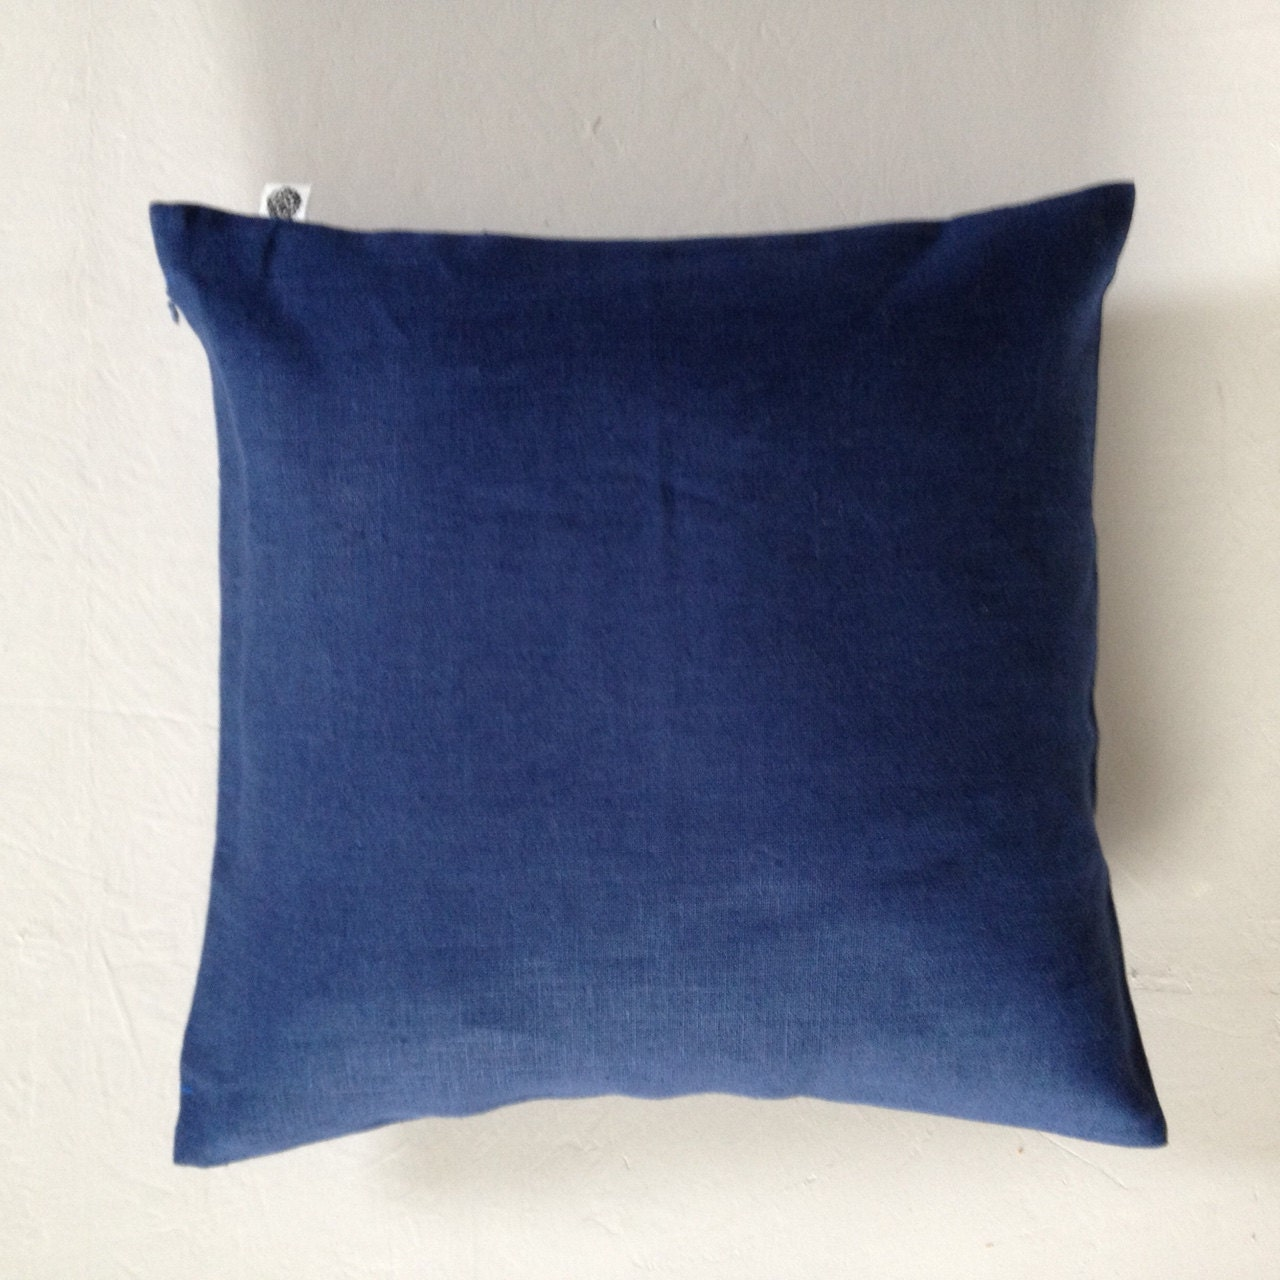 royal blue ruffled throw pillows - 28 images - royal blue ruffled throw pillows 28 images royal ...